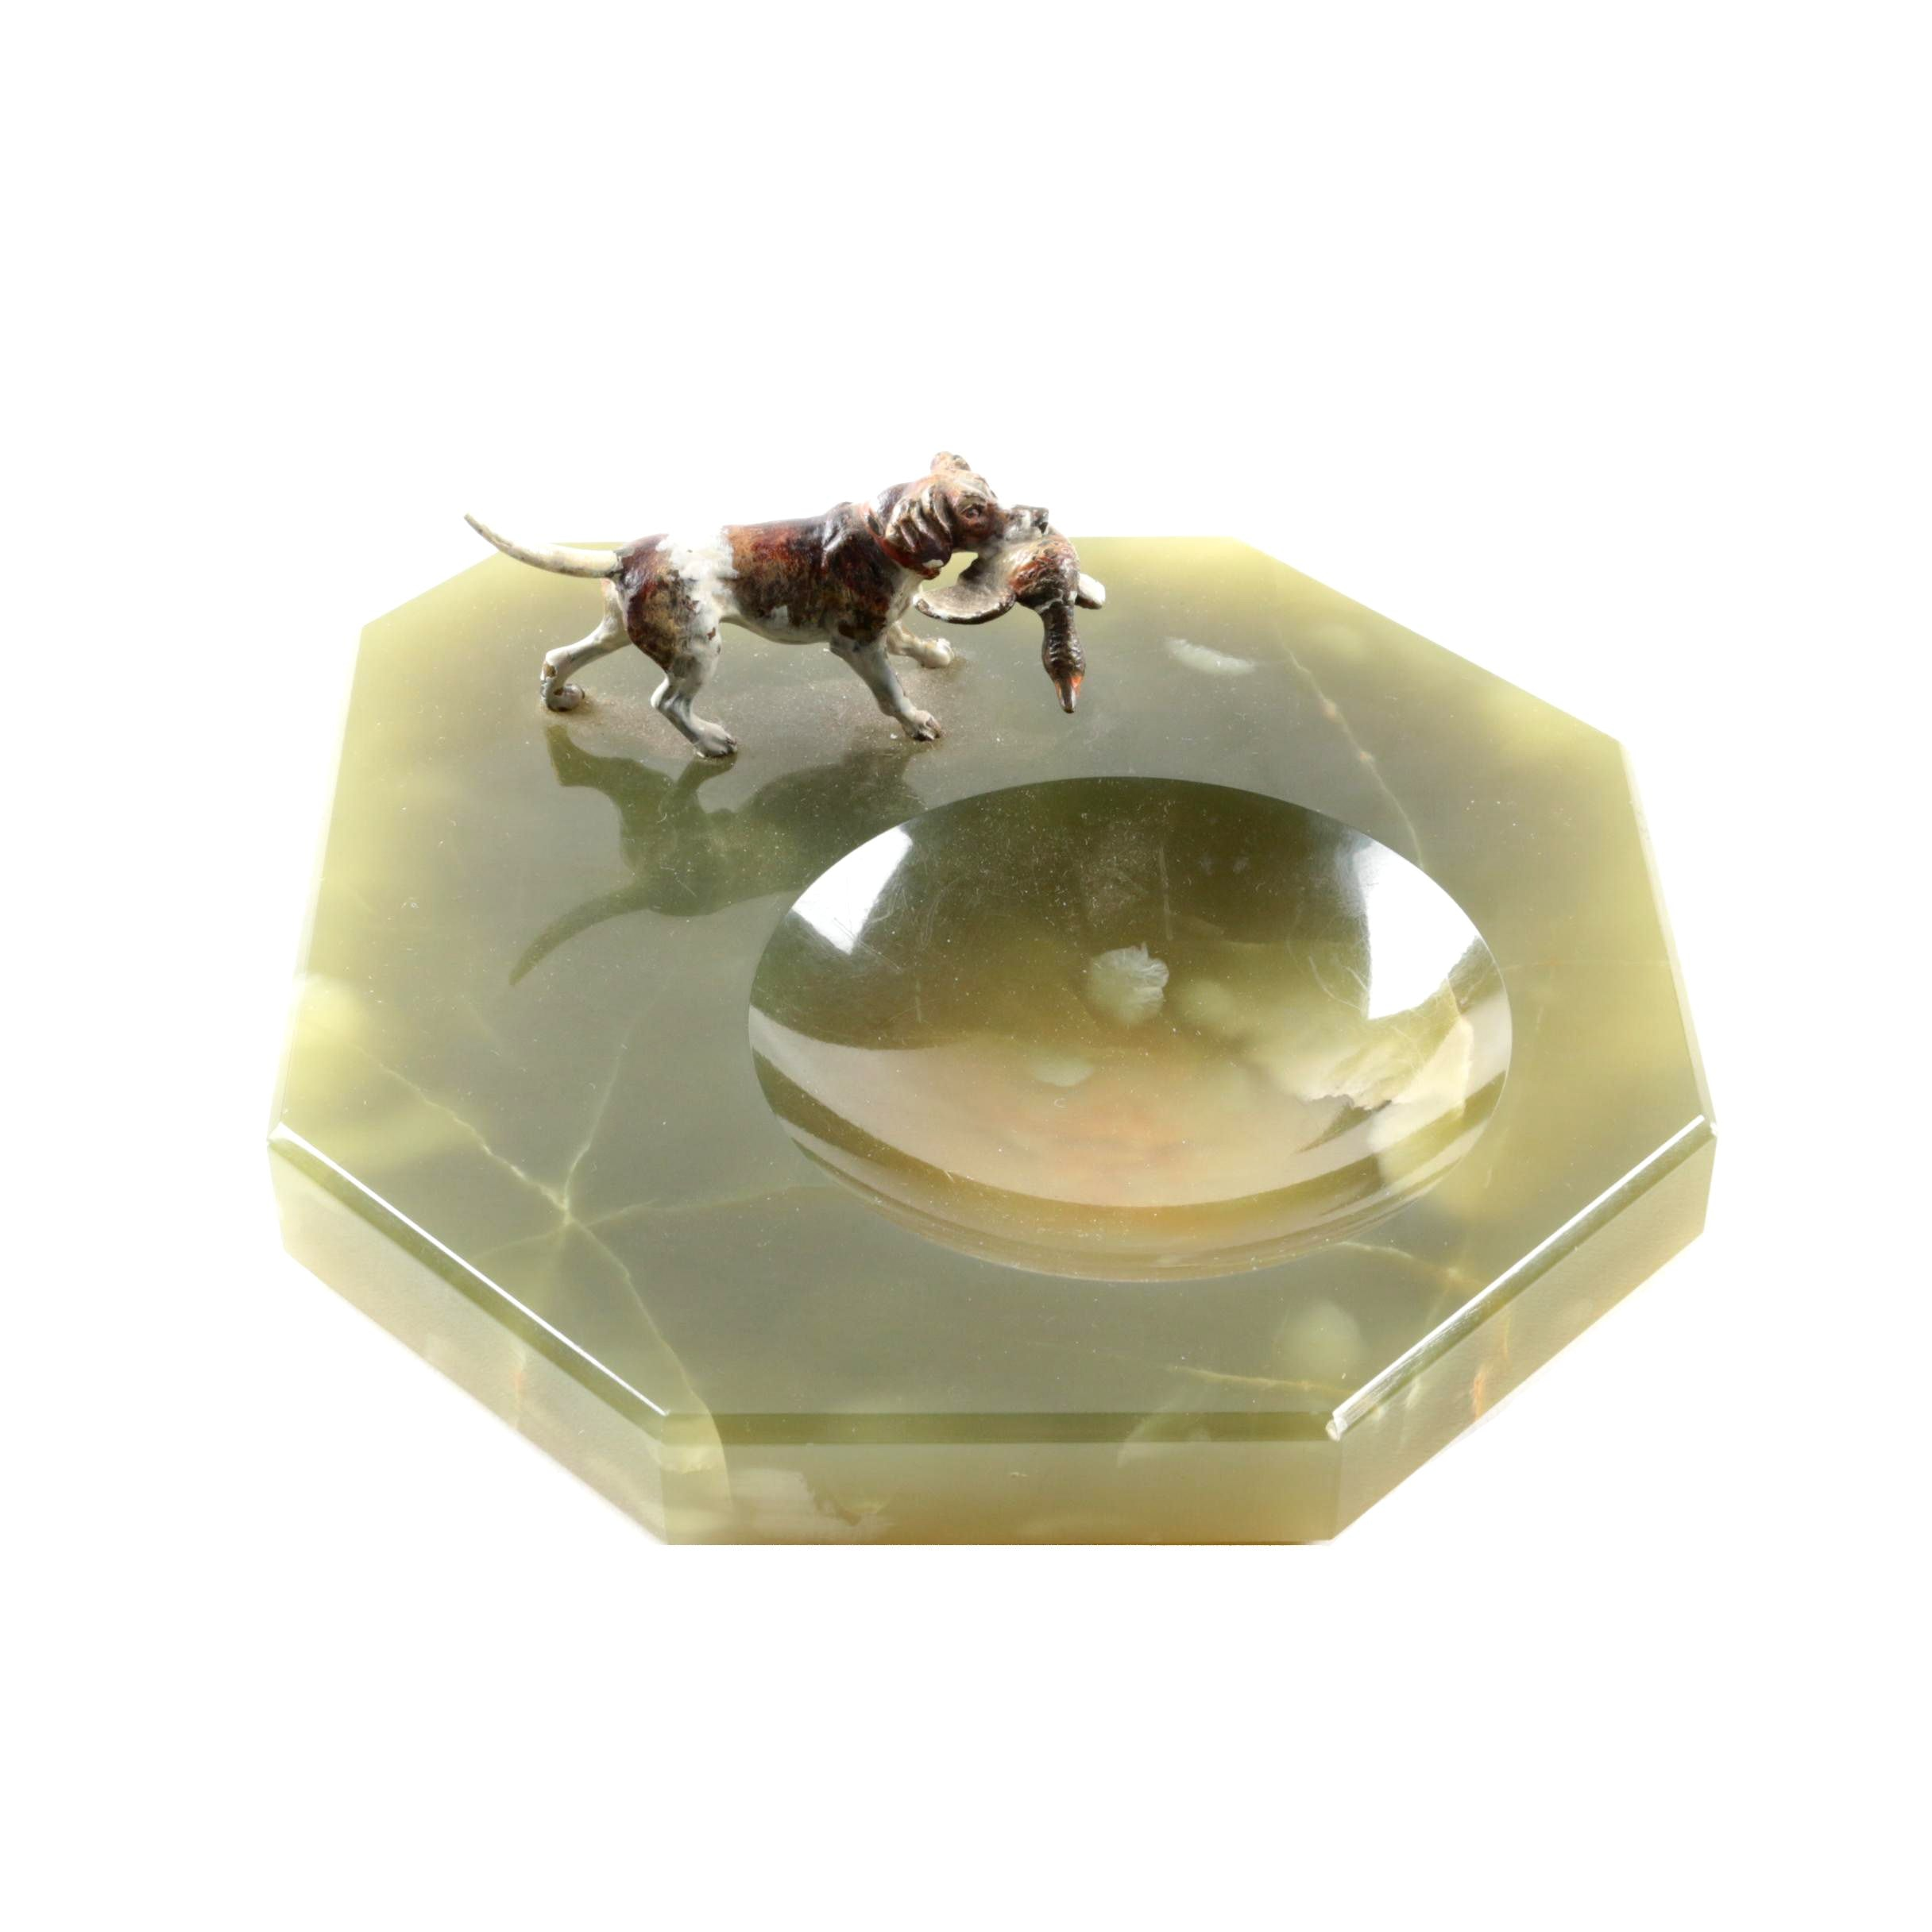 Green Calcite Trinket Dish with Hunting Dog Figurine